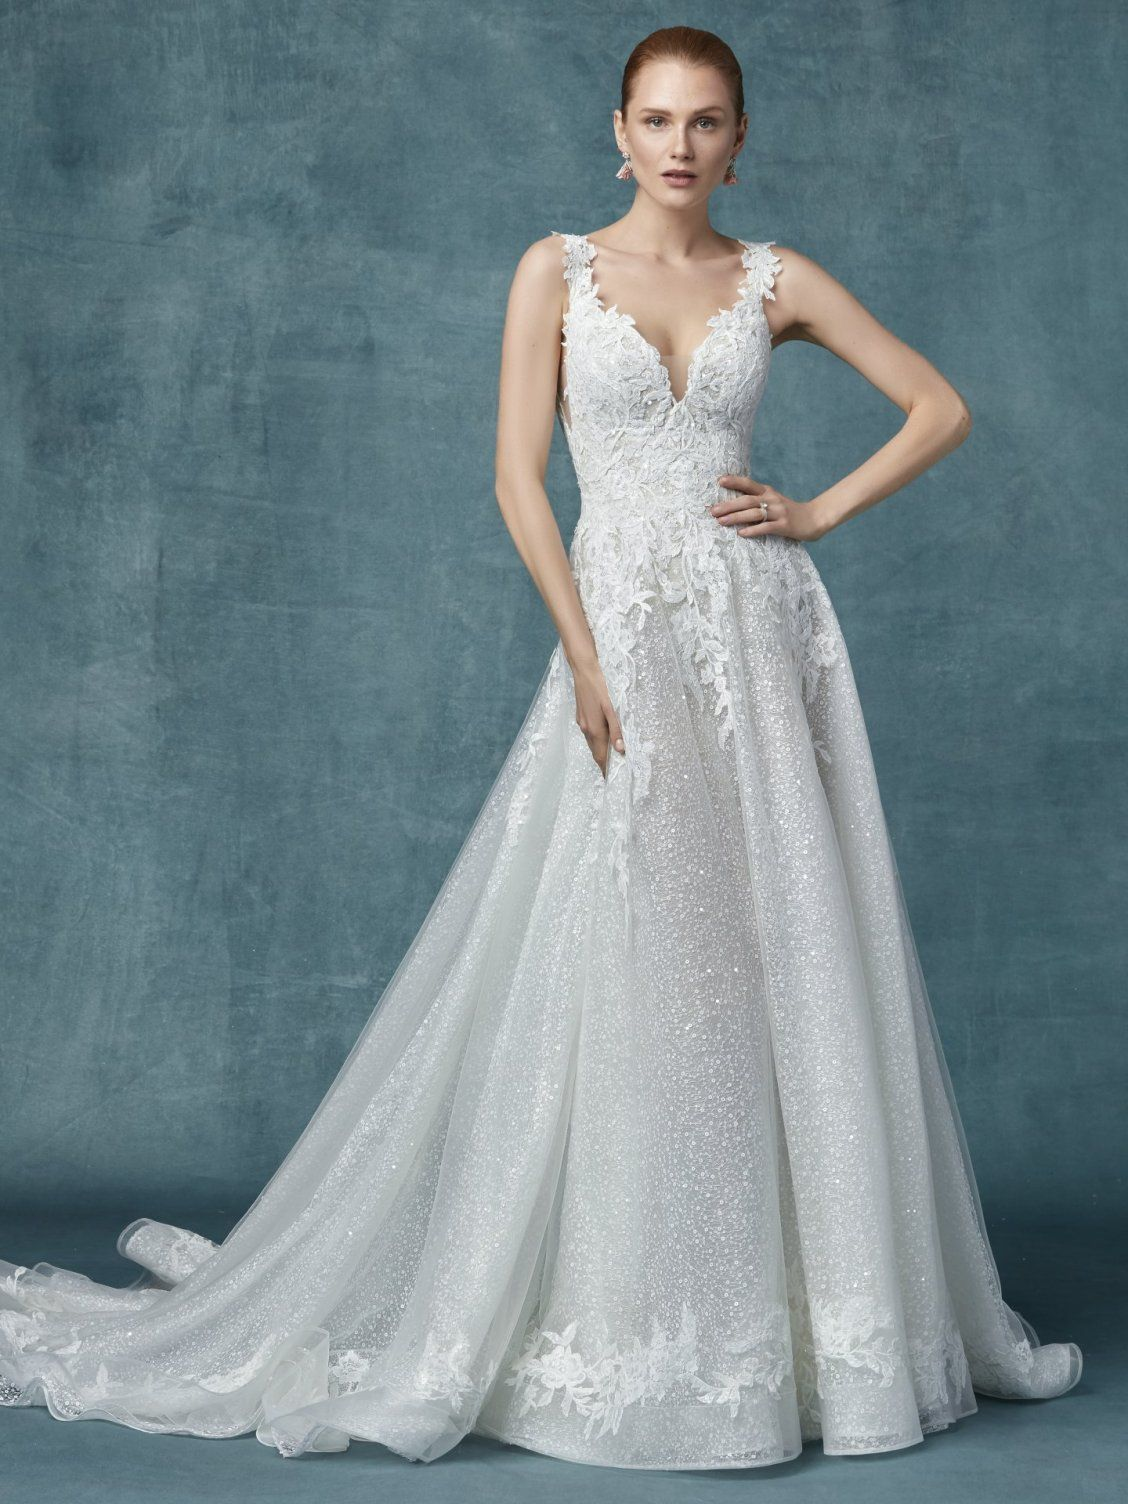 bf69833760b CARMELLA by Maggie Sottero Wedding Dresses in 2019